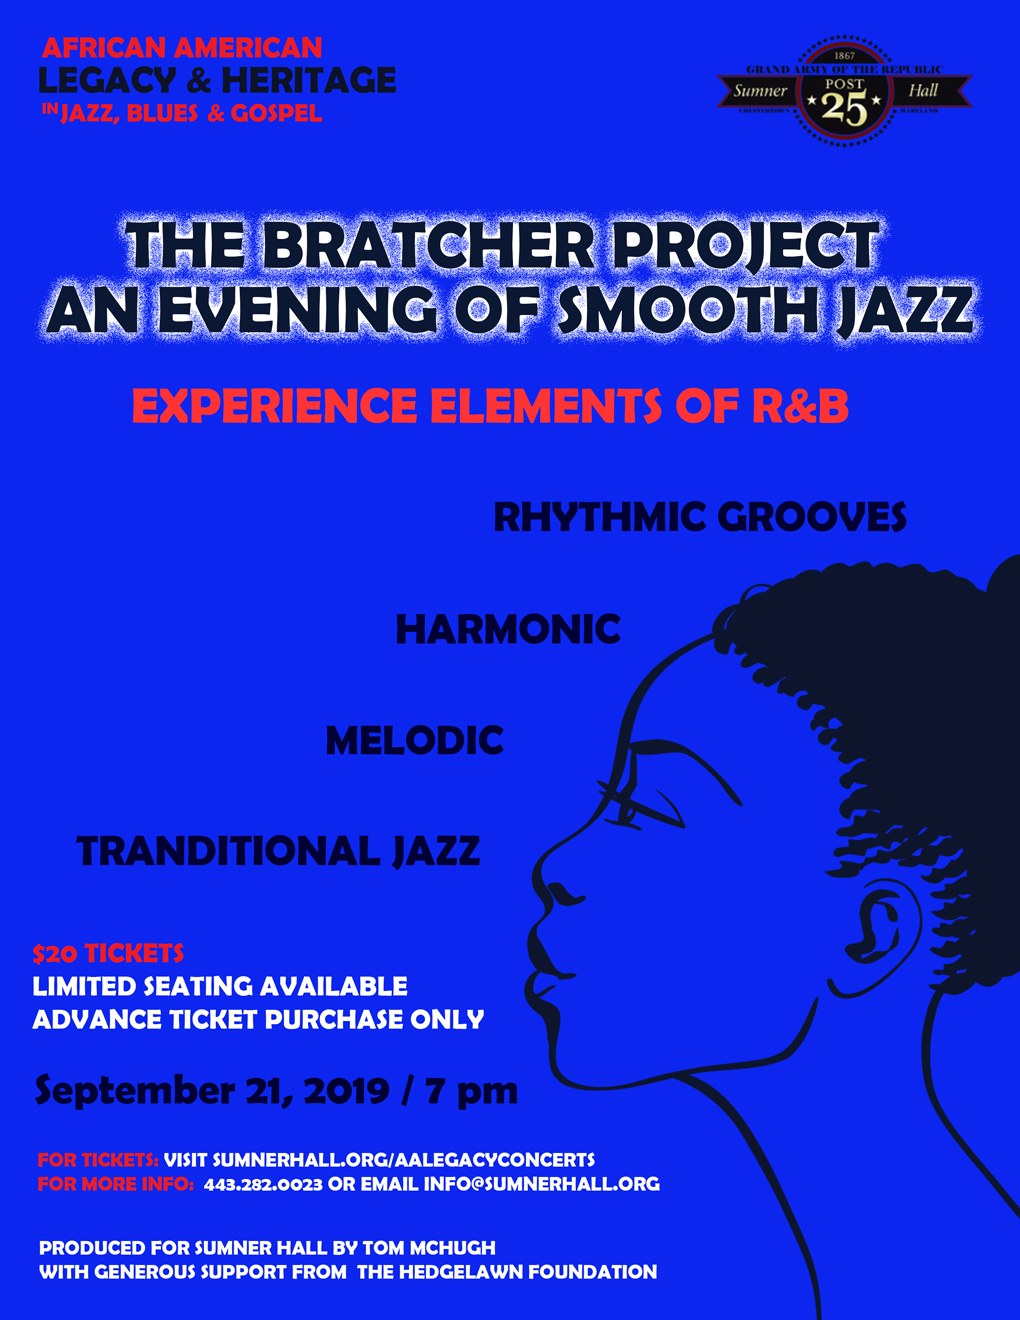 The Bratcher Project - An Evening of Smooth Jazz